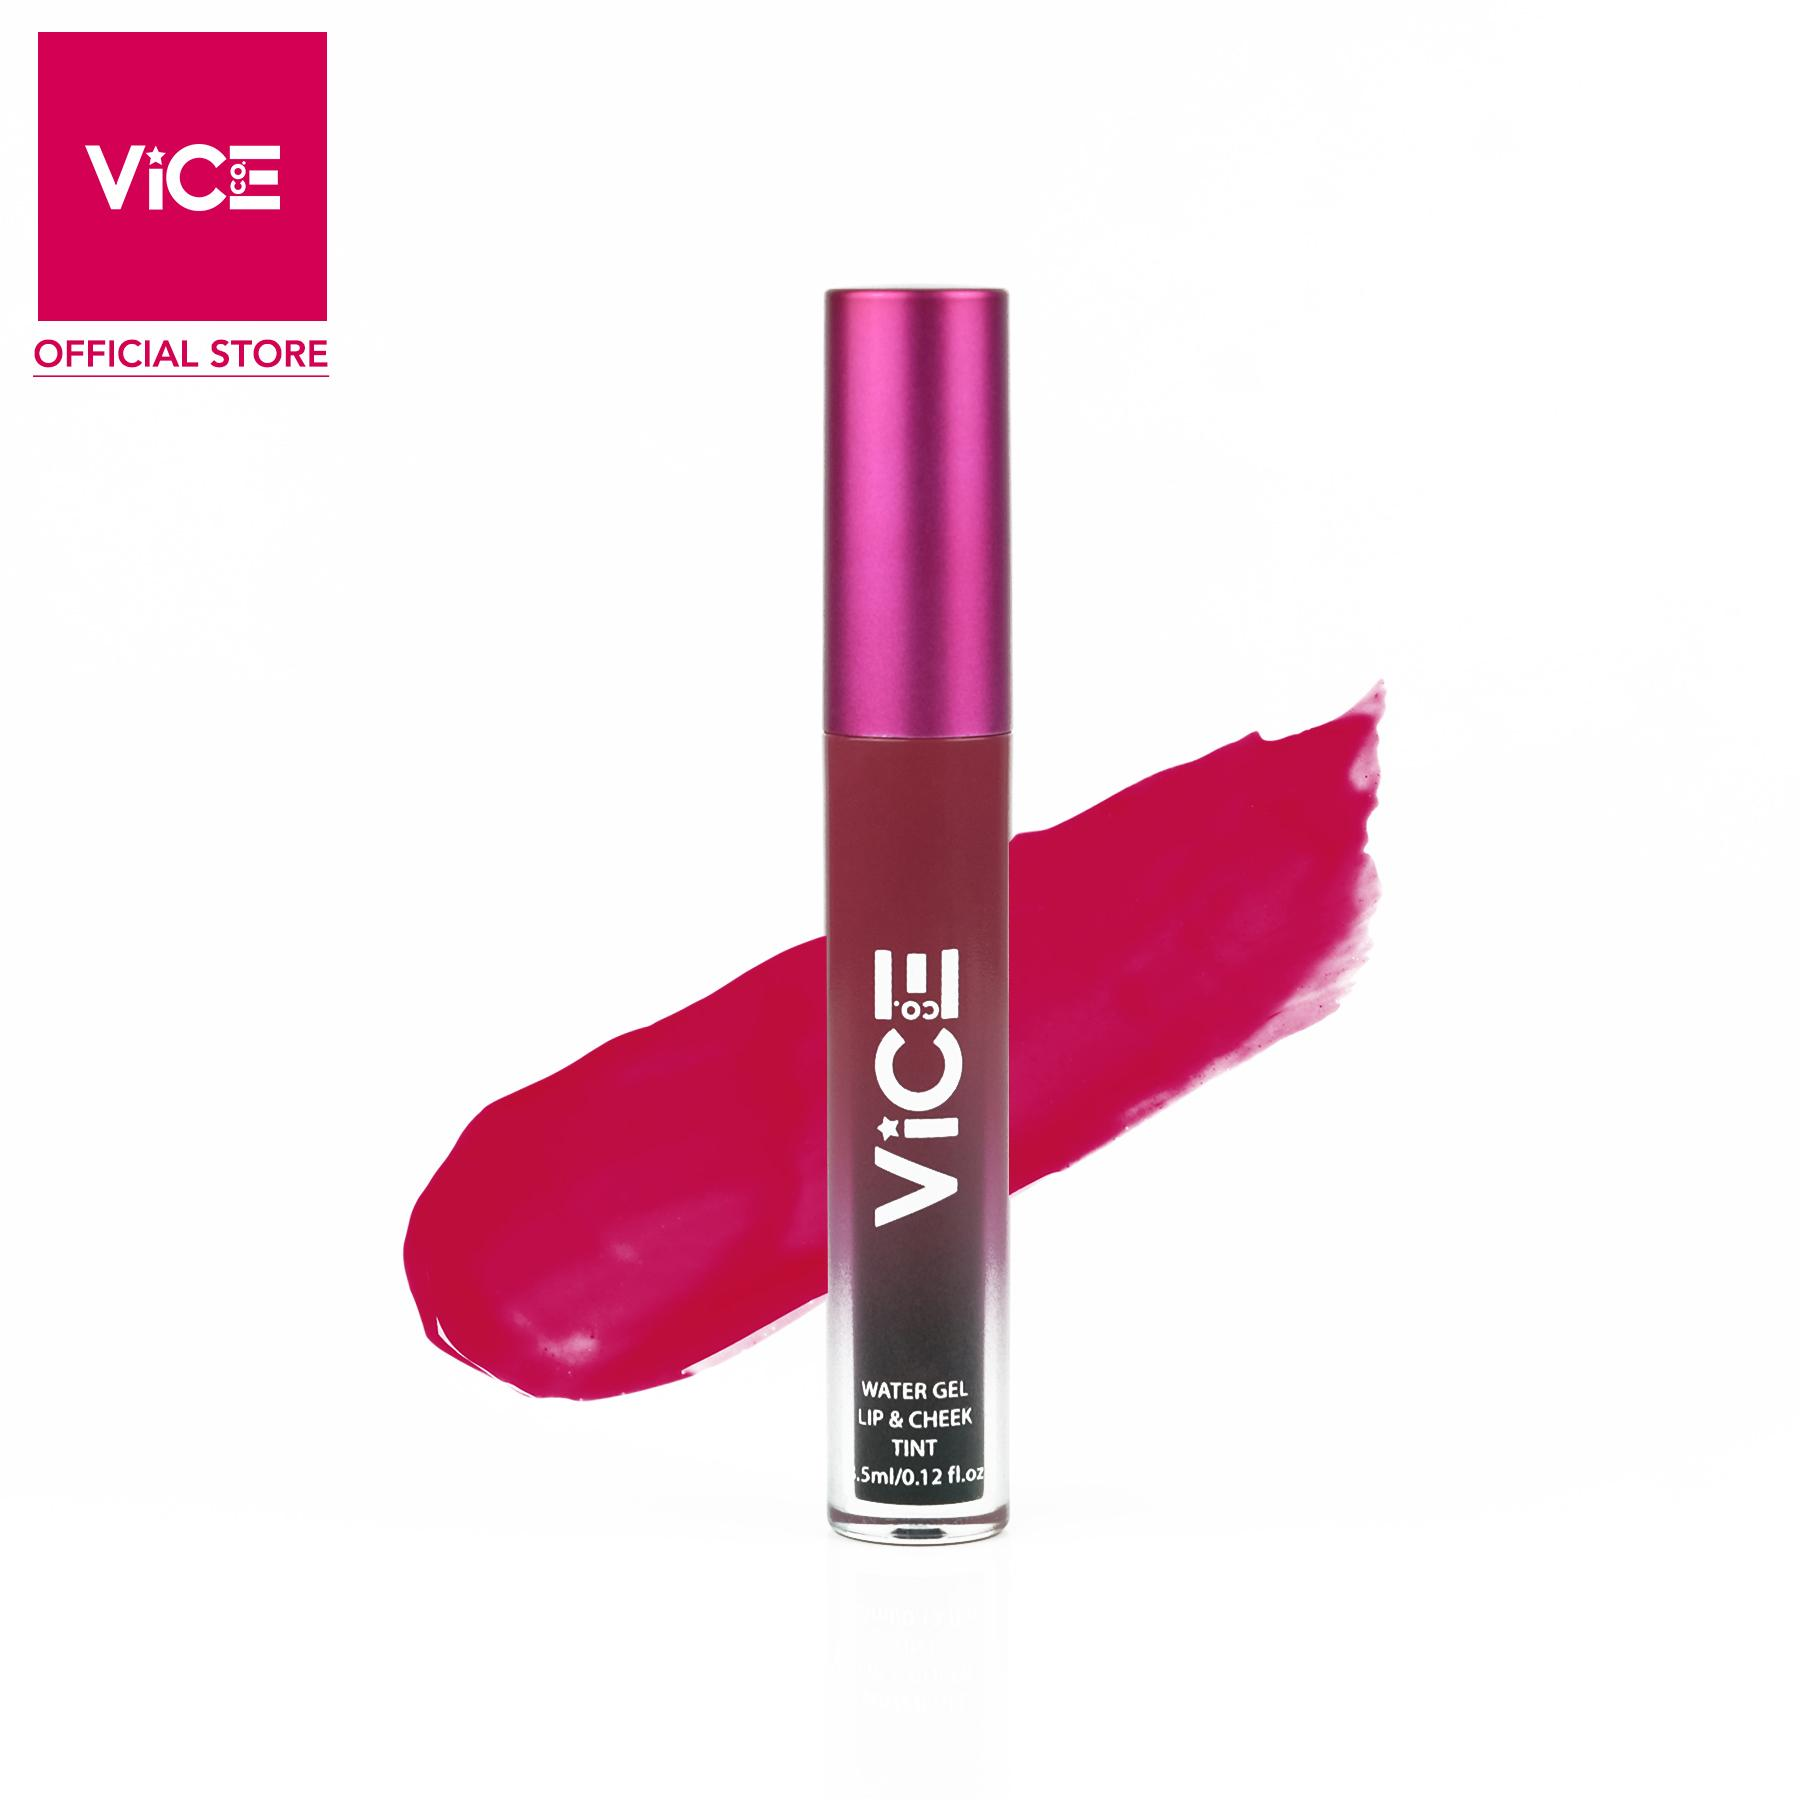 Vice Cosmetics Water Gel Lip & Cheek Tint Paberjin Philippines